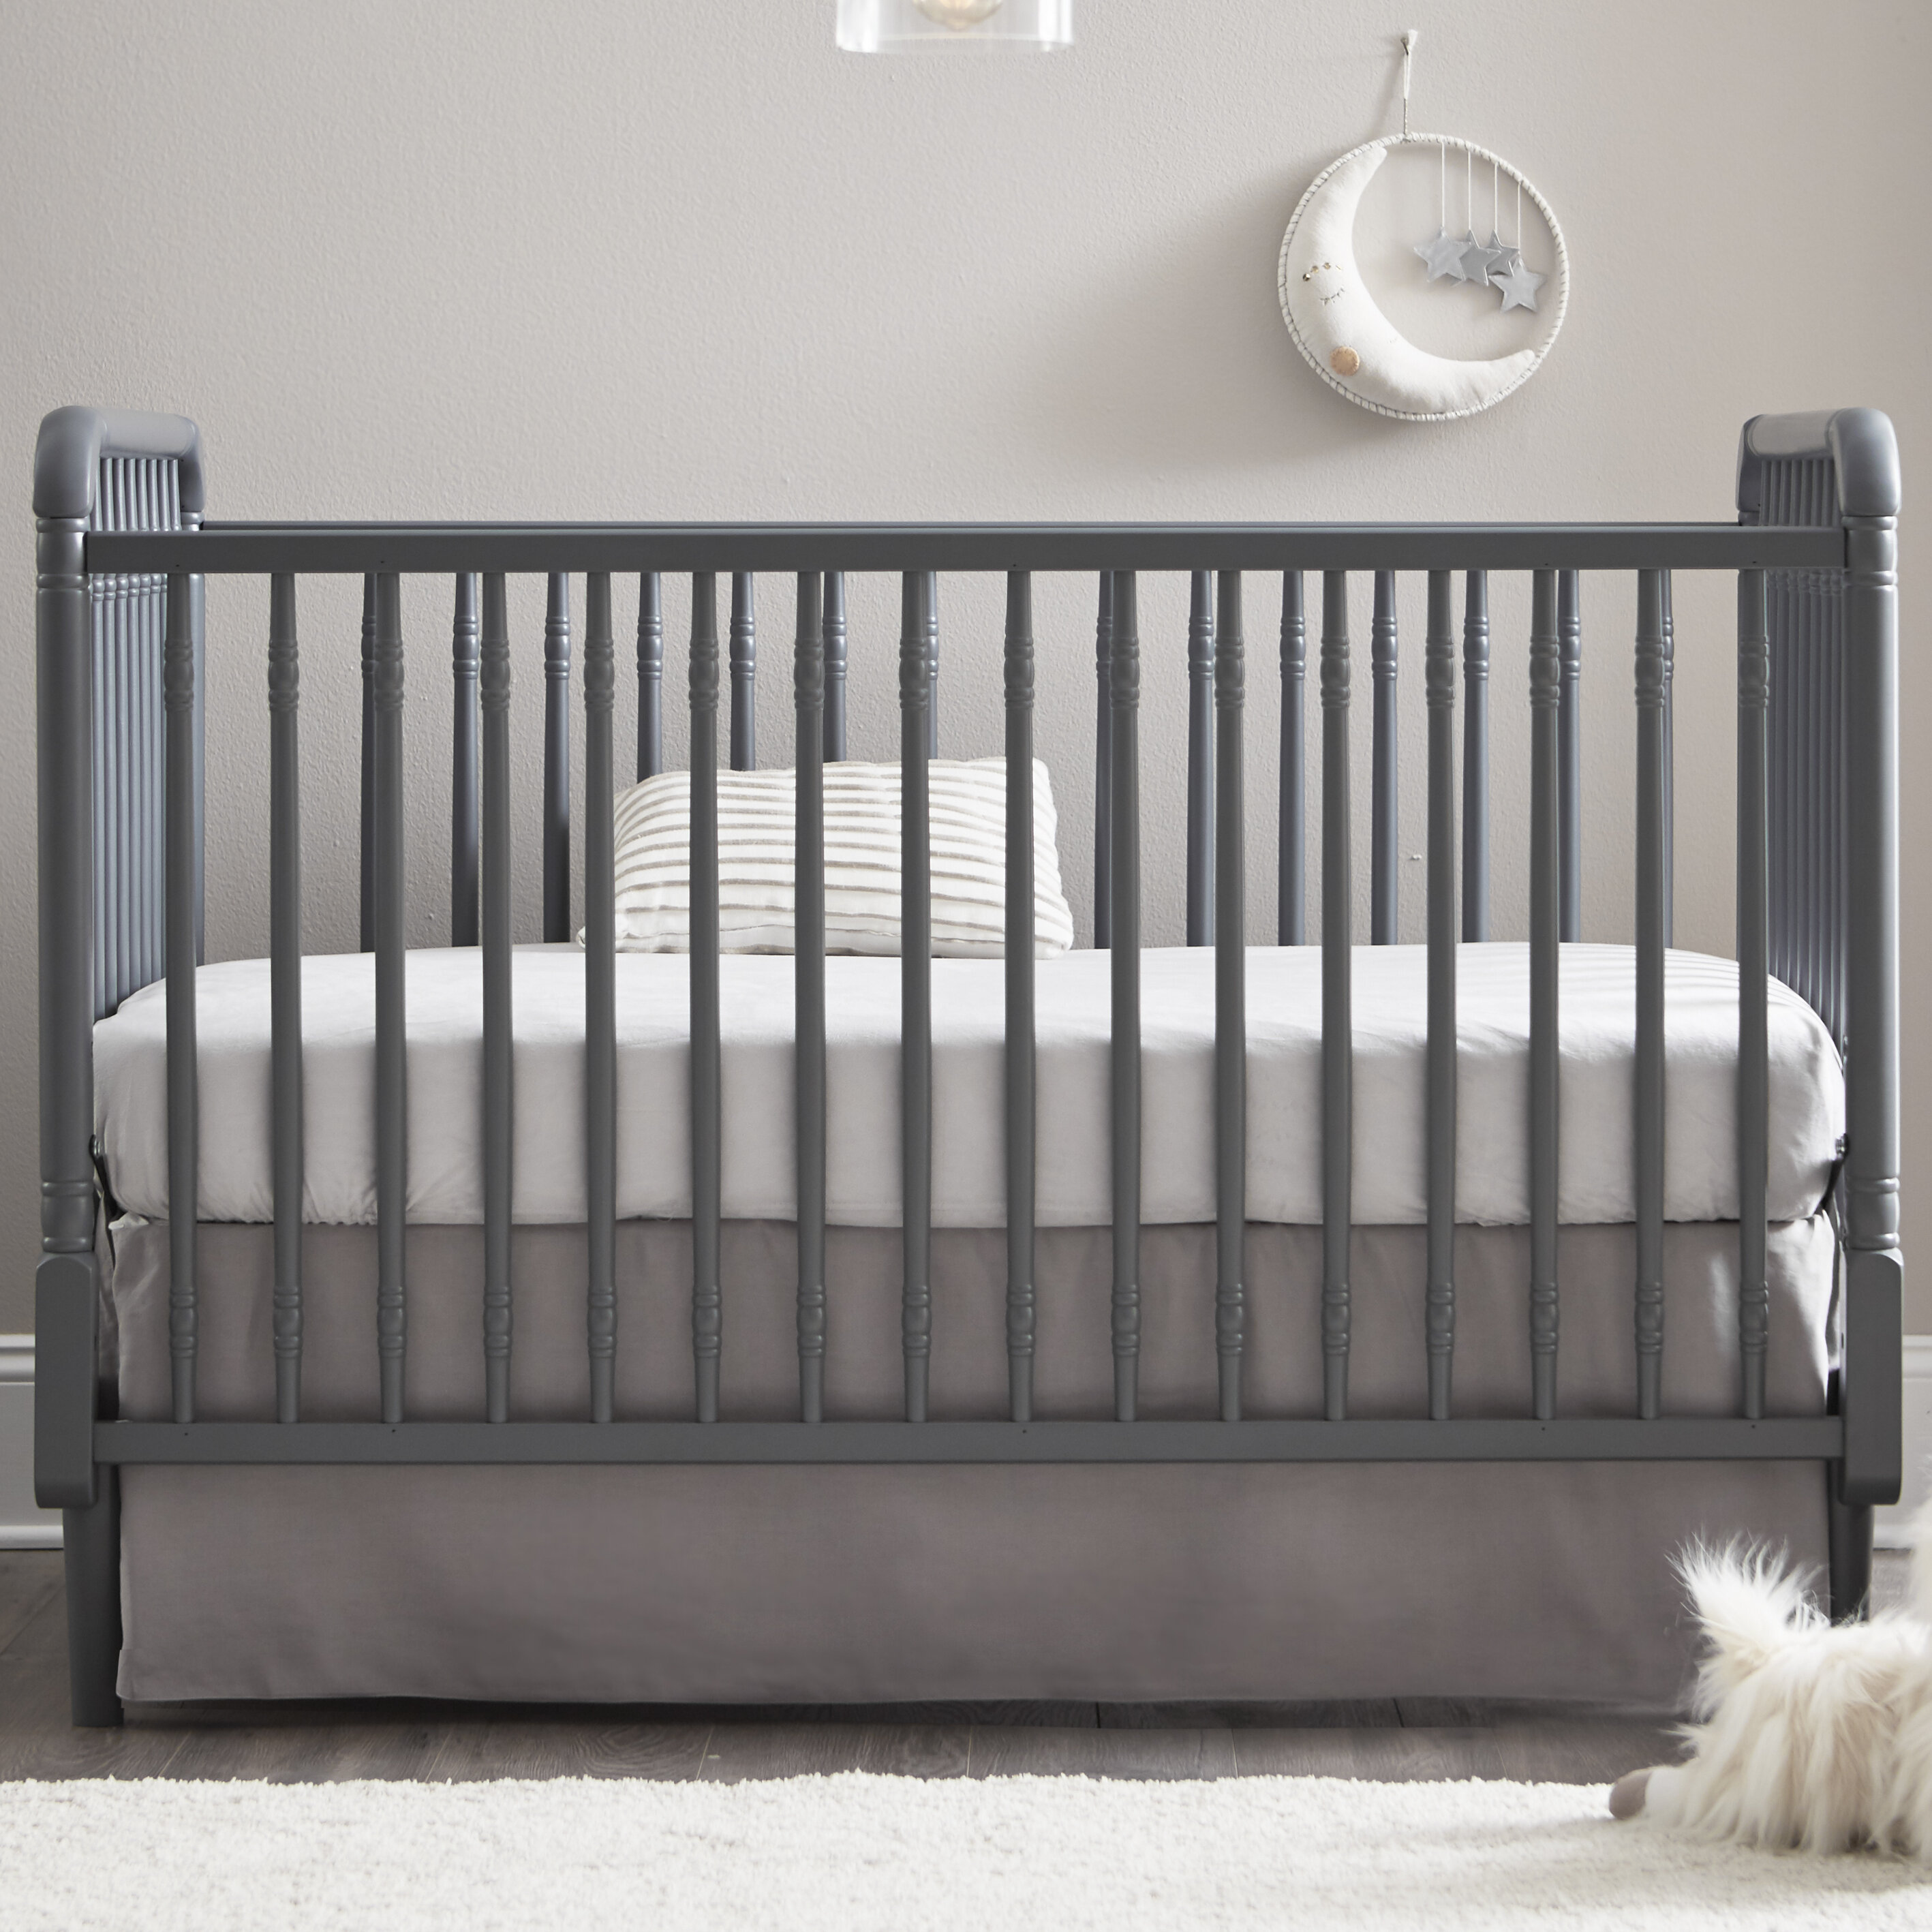 57100233a8 Karla Dubois Zola 3-in-1 Convertible Crib   Reviews